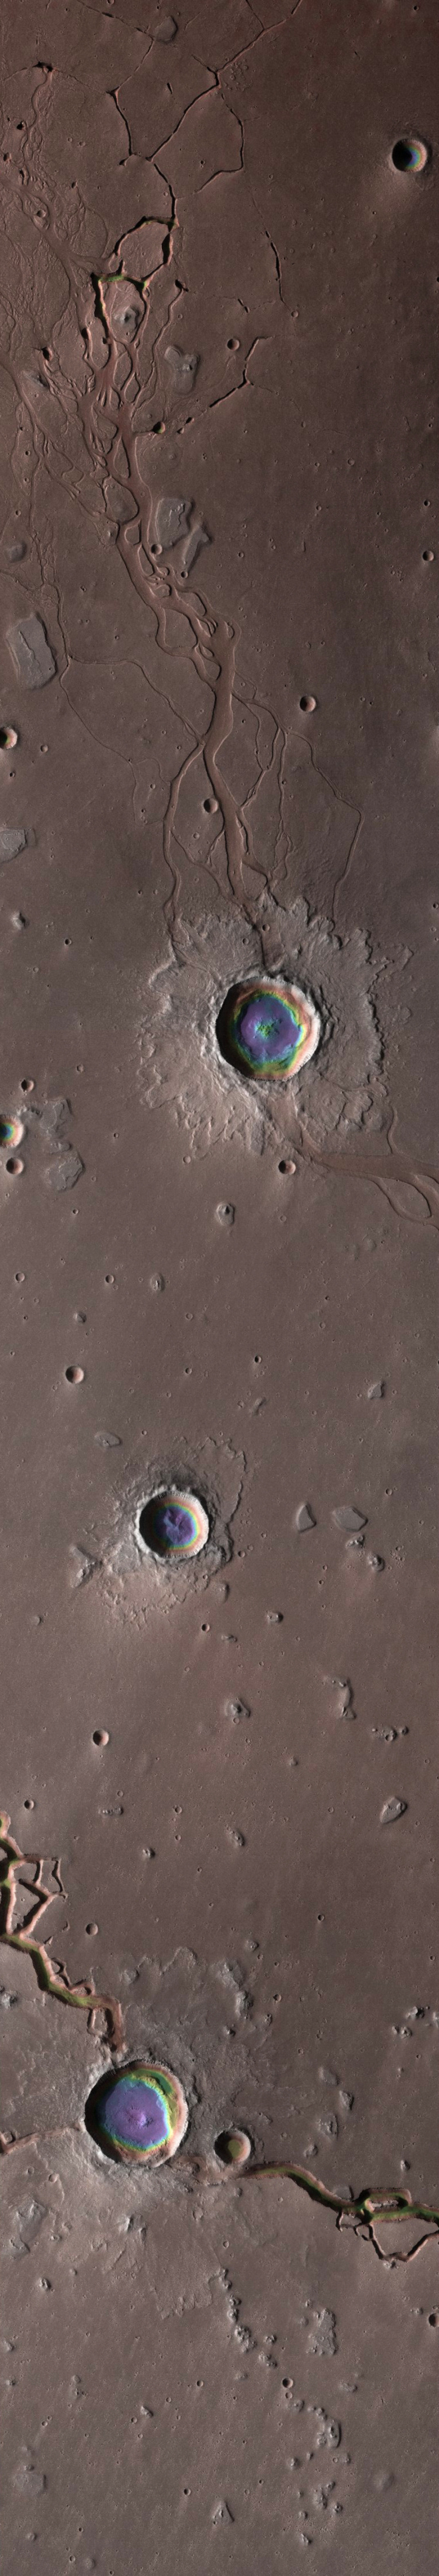 The Depths of Hephaestus Fossae